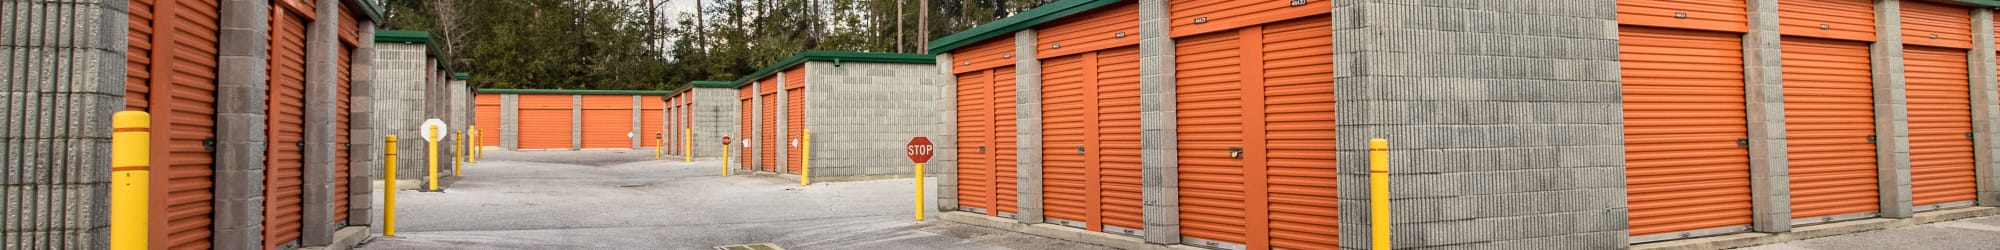 Contact Neighborhood Storage today regarding unit storages in your area